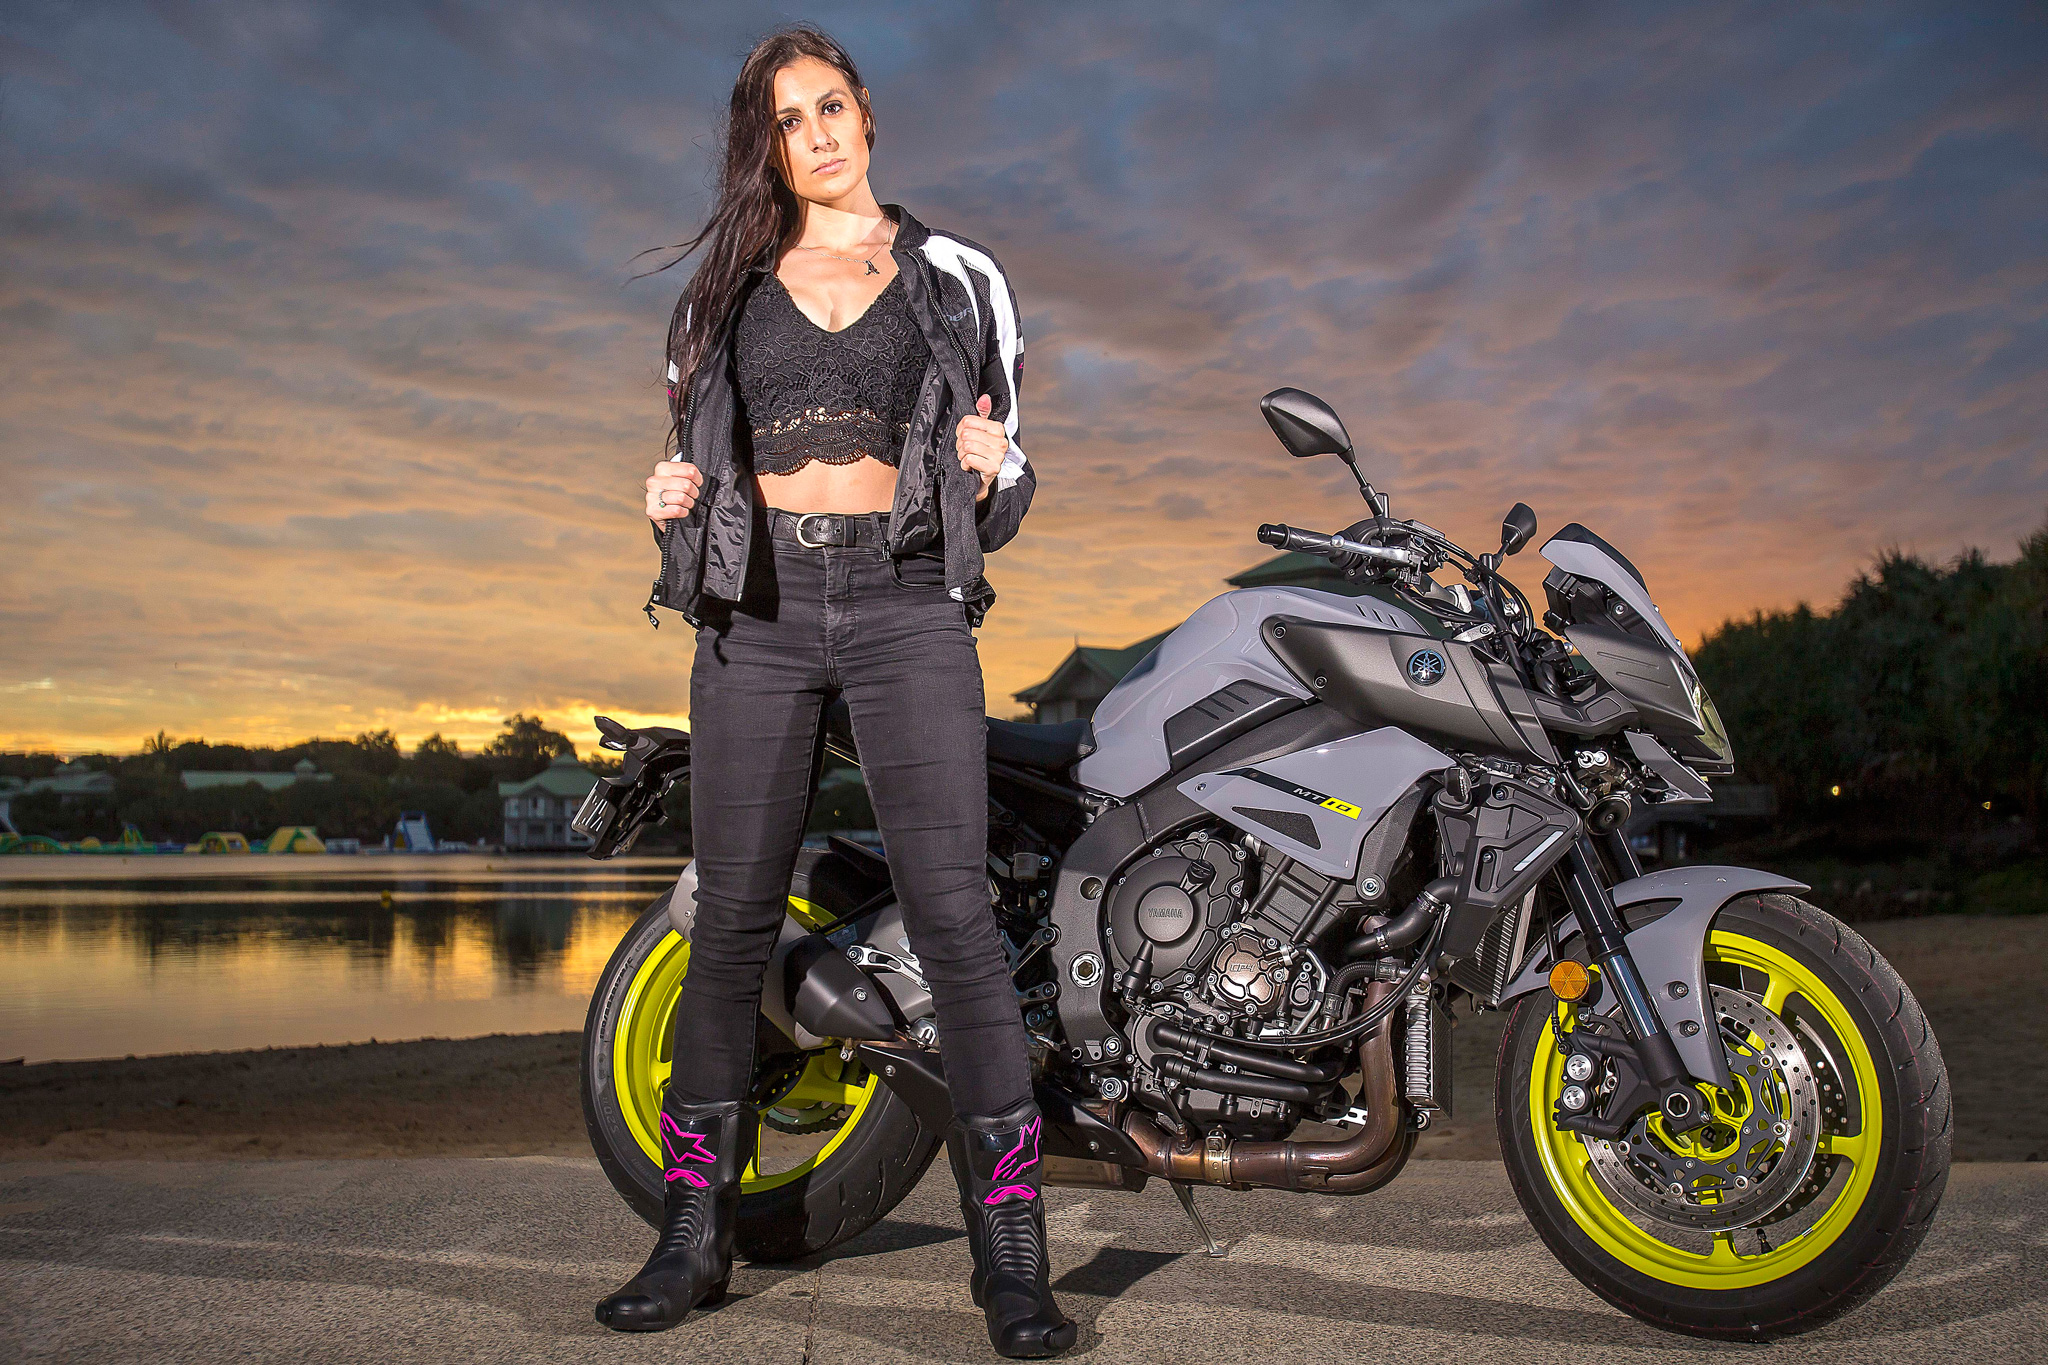 yamaha-mt-10-static-image-with-model